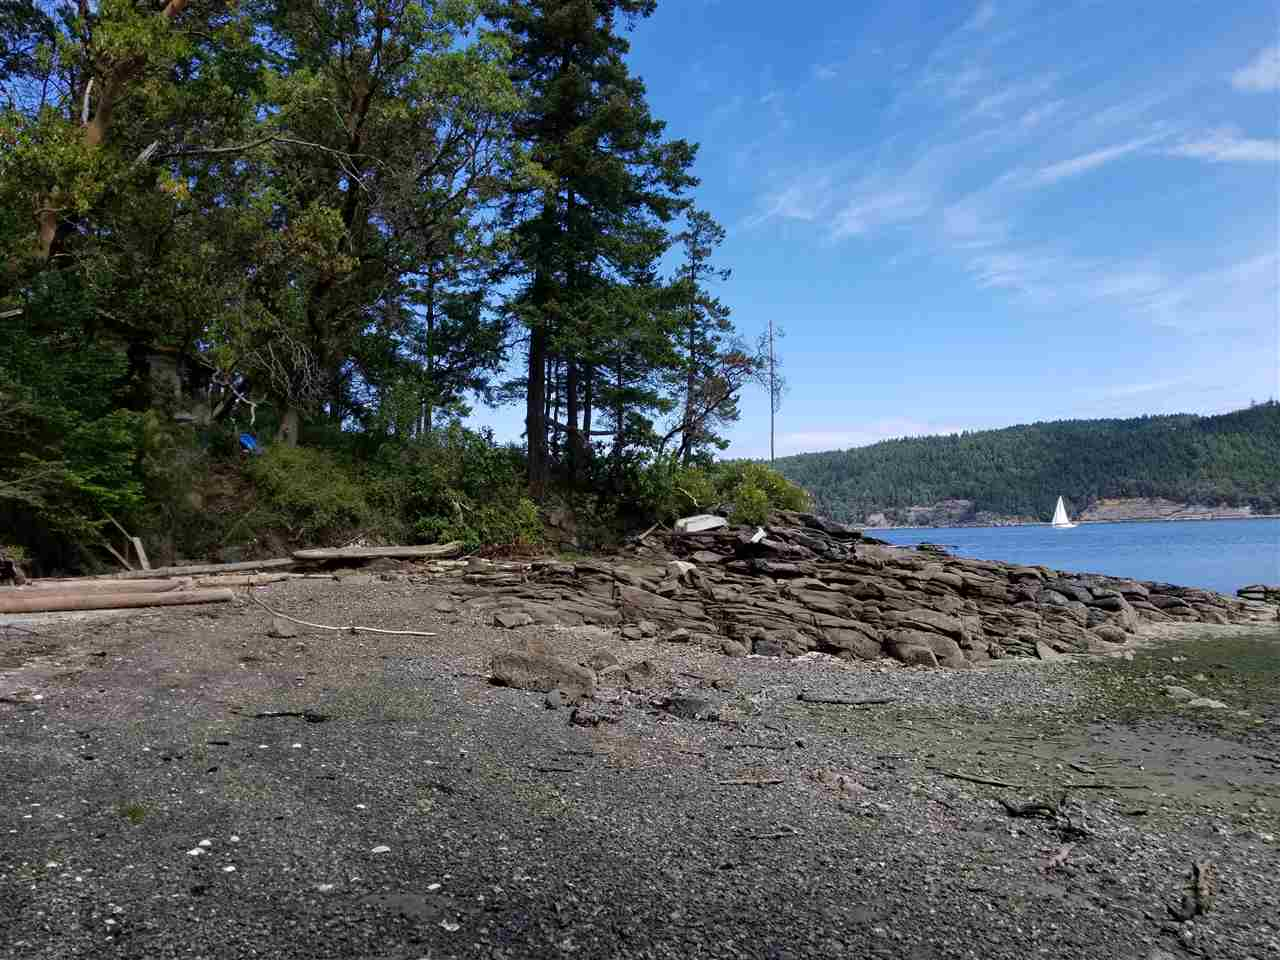 Water building lot with over 117 feet of Sandy Beach on Wise Island. Located in a protected bay that dries out at low tide, a wonderful playground for kids of all ages. 0.35 acre of land, fully treed and usable land. It is connected to a community water system. Wise Island is located between Galiano and Salt Spring Island. It is easily accessible from protected Montague Harbour on Galiano or from Ganges on Salt Spring Island. Bring your cottage plans and build your dream cottage on one of the few buildings lots left on the island. Property with cabin on a point of land to the west is located adjacent to subject property and is for sale by same family. Acquire both properties for yourself or buy with friends.